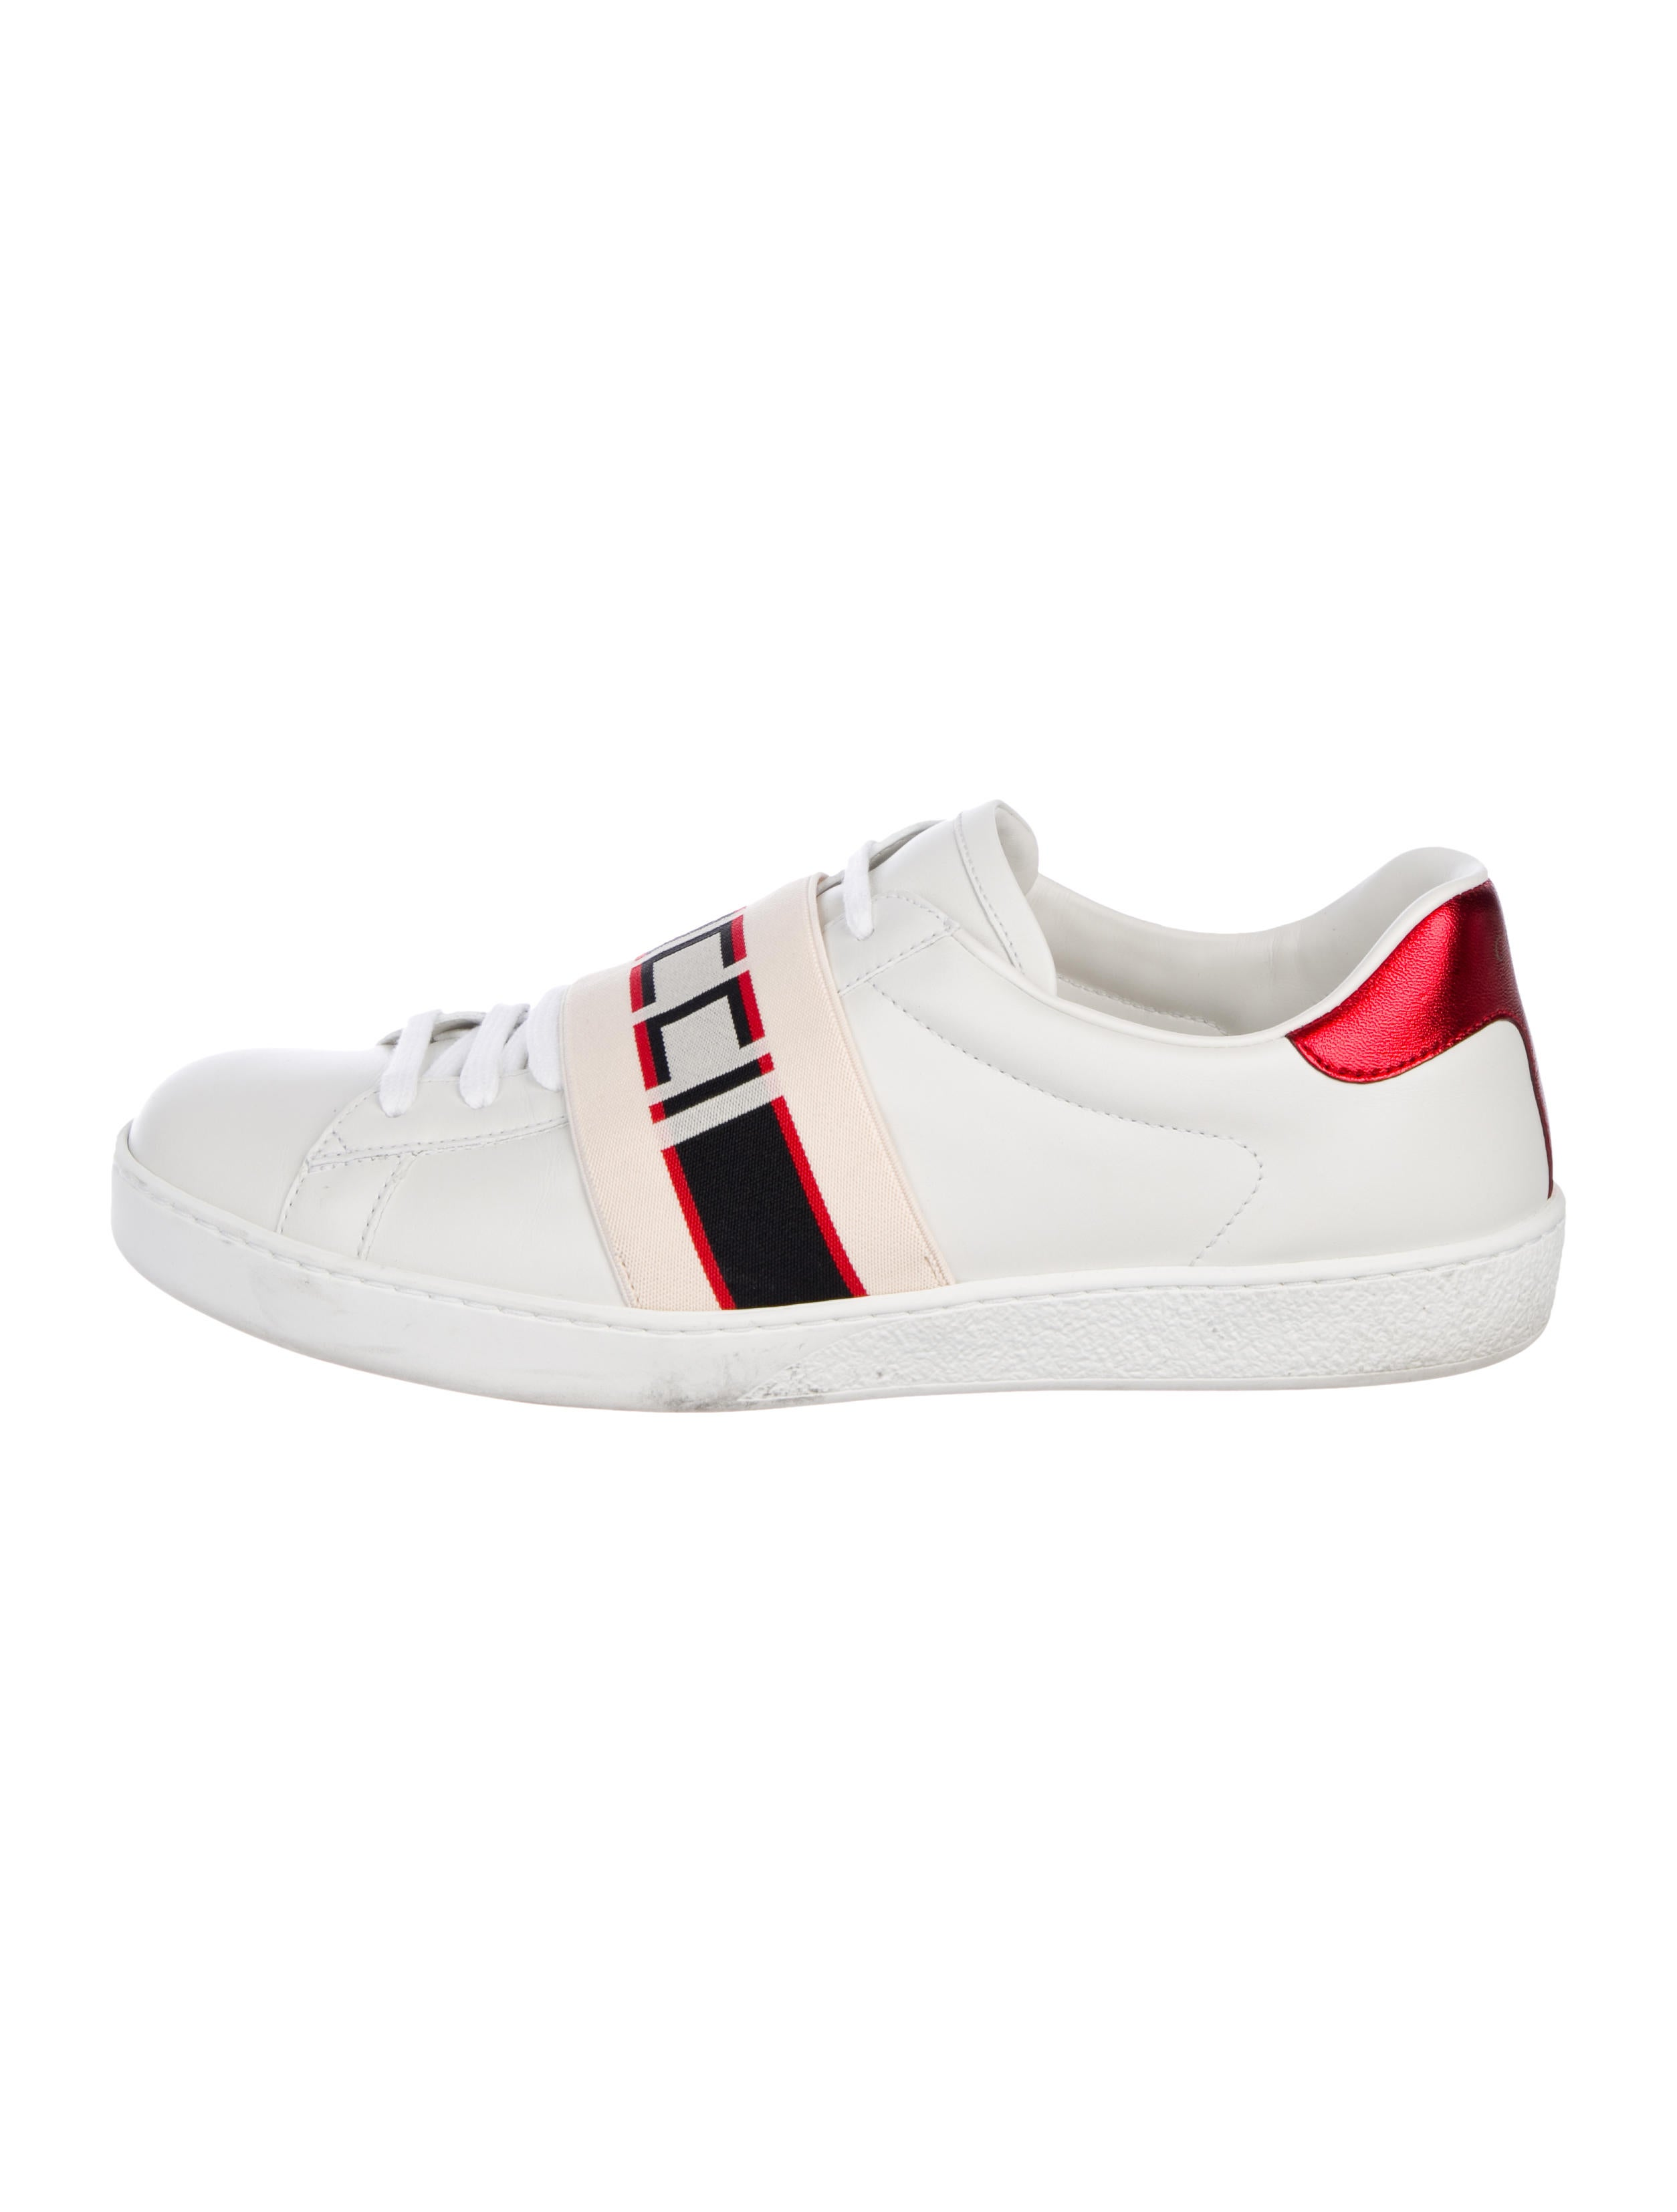 030e9a786ff2 Gucci New Ace Sneakers - Shoes - GUC288017